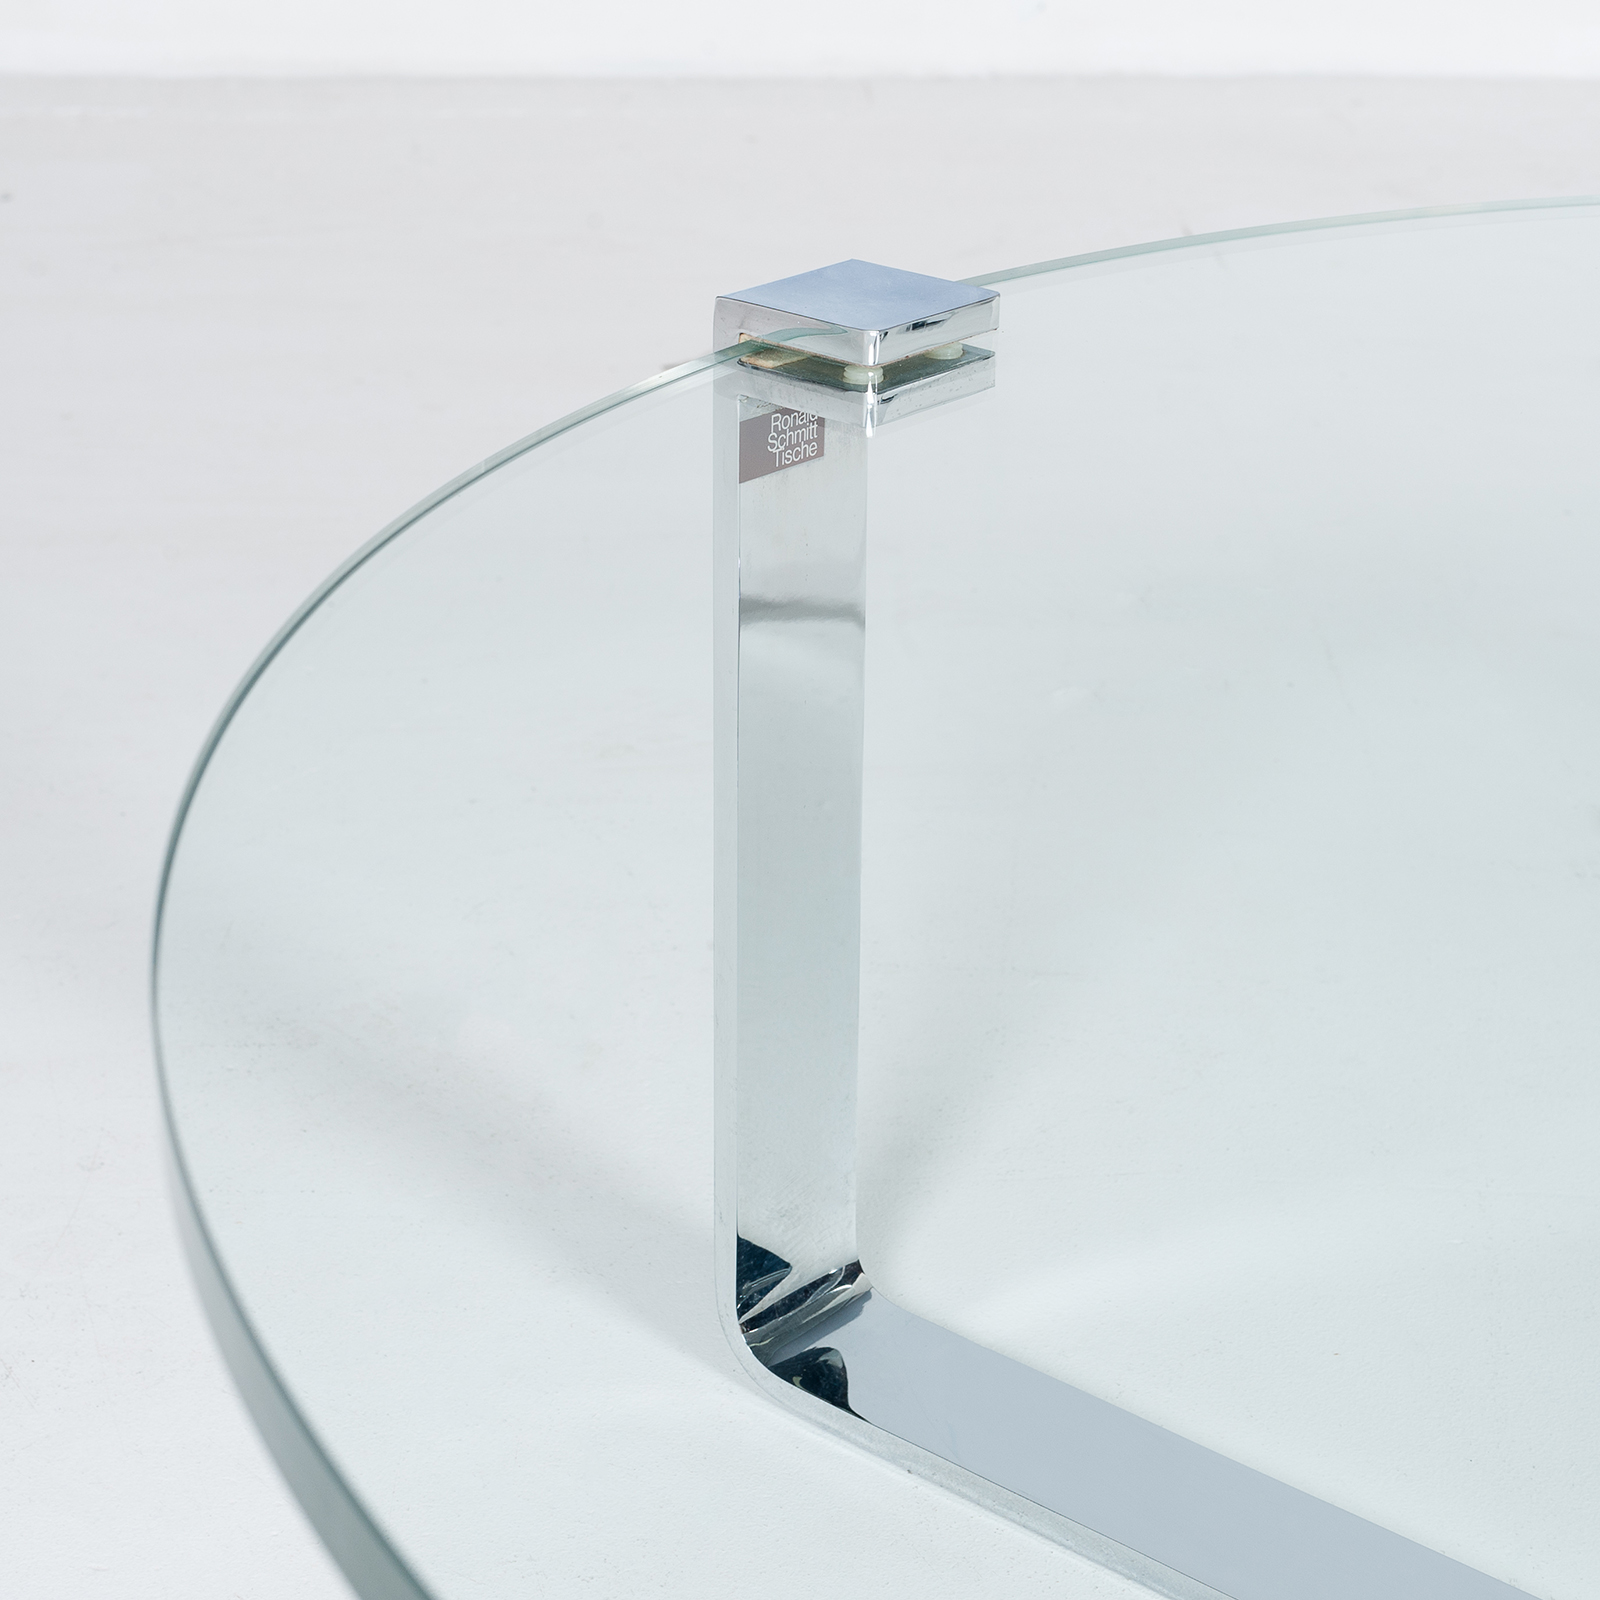 Round Coffee Table In Glass And Polished Chrome By Friedrich Wilhelm Moller For Ronald Schmitt, 1970s, Germany67